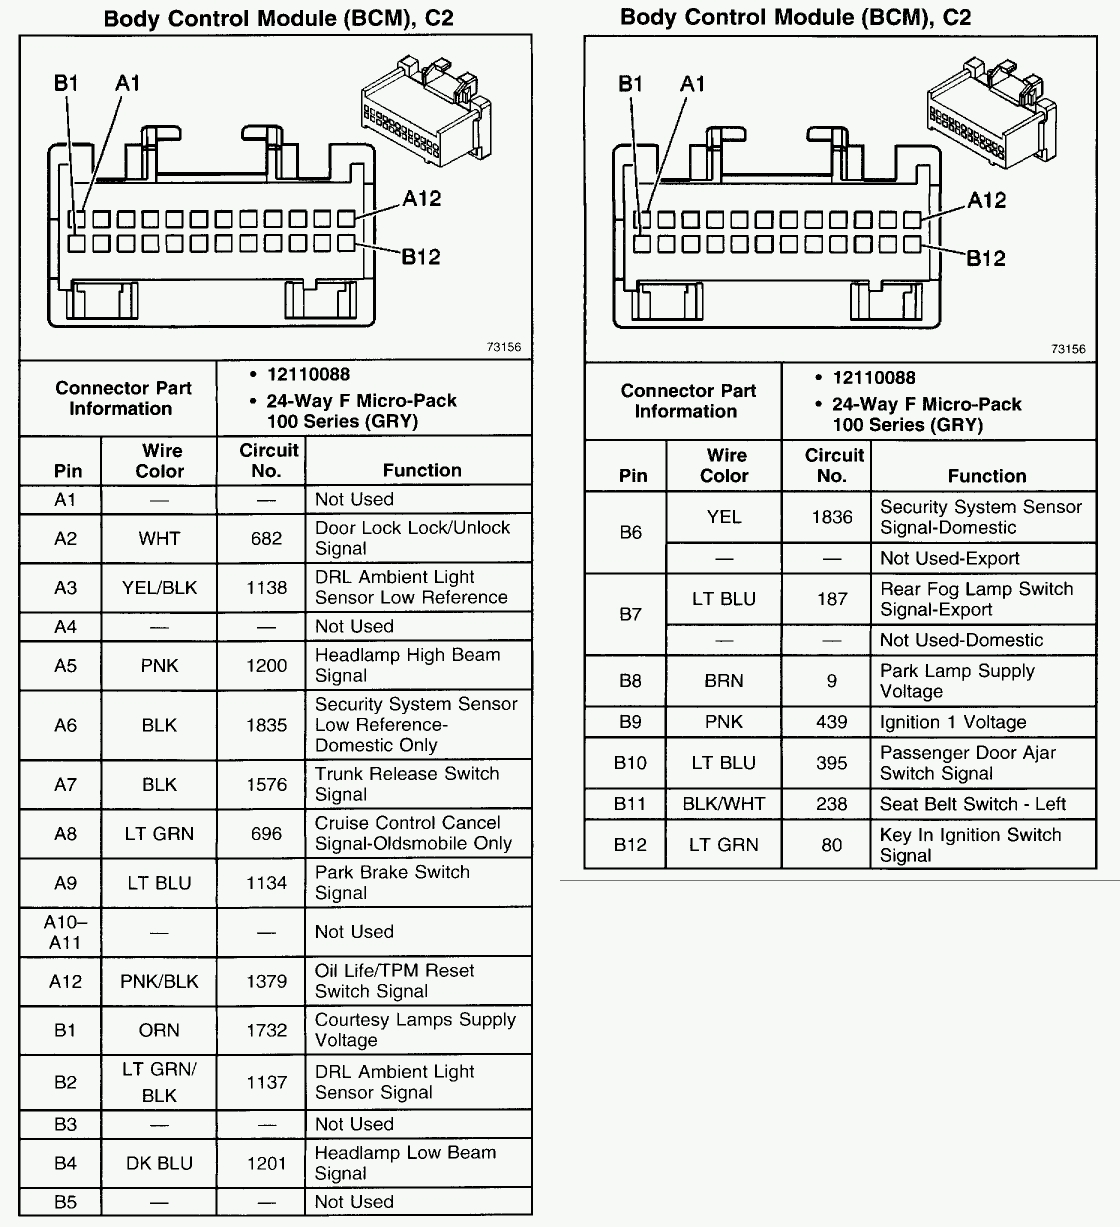 pontiac grand prix radio wiring diagram 2013 07 17 171026 2000 dic intended for 2004 pontiac grand prix parts diagram pontiac grand prix radio wiring diagram 2013 07 17 171026 2000 dic 2000 pontiac grand prix radio wiring diagram at pacquiaovsvargaslive.co